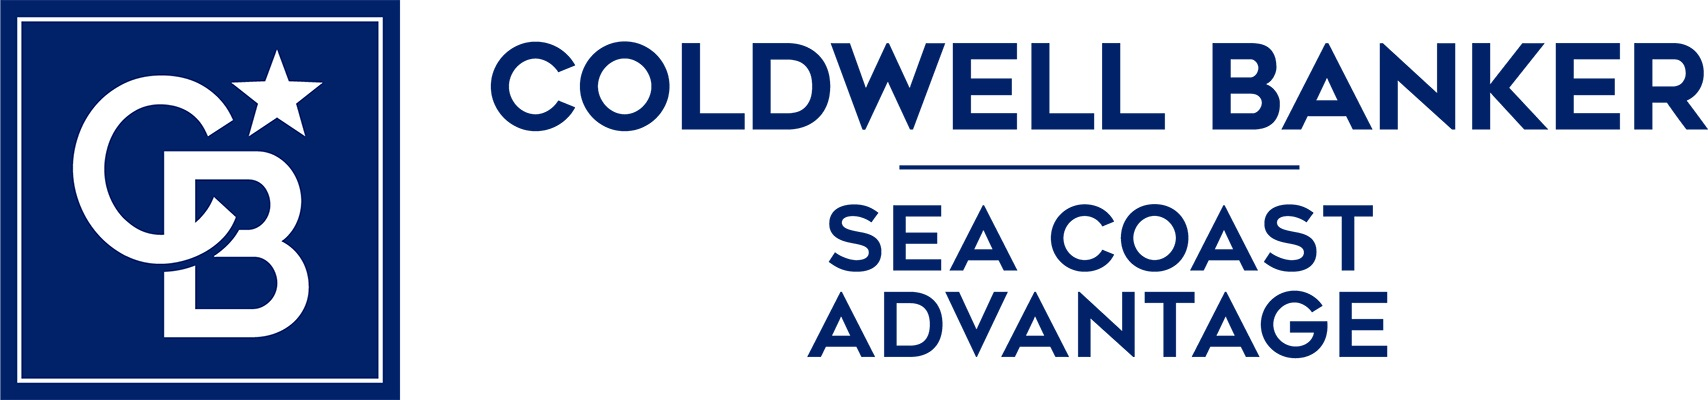 Ingrid Reynolds - Coldwell Banker Sea Coast Advantage Realty Logo